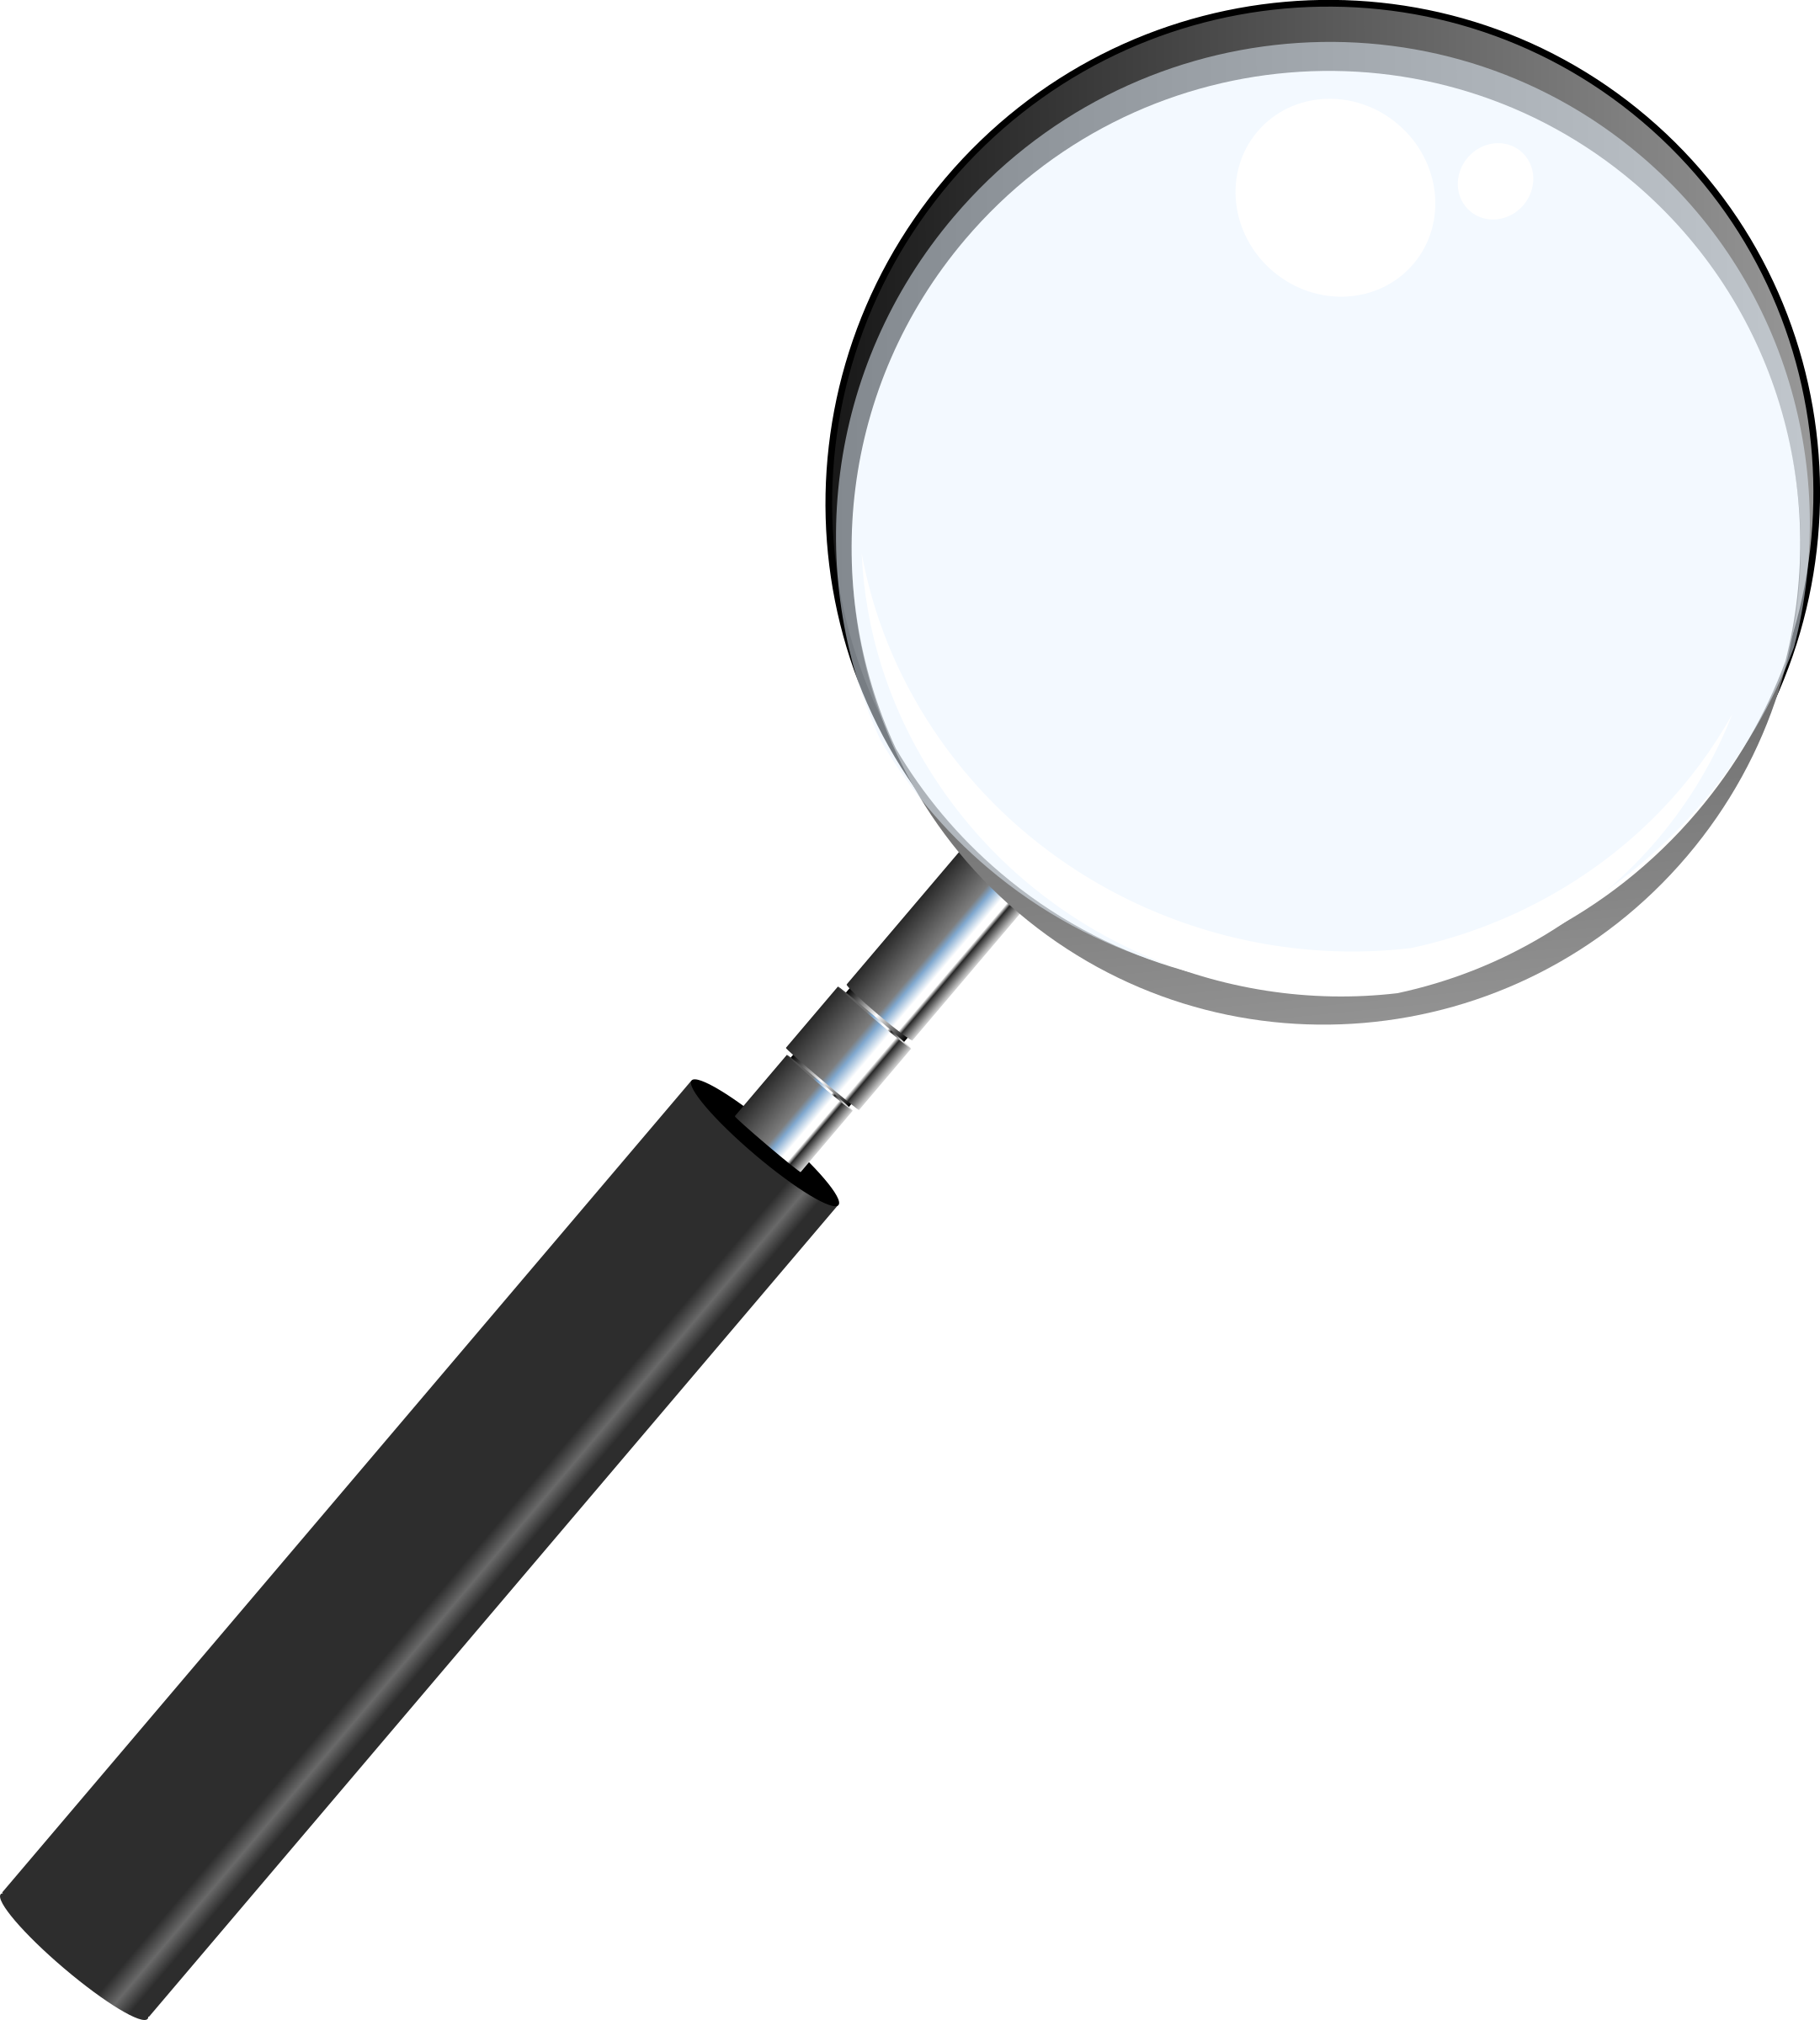 Detective clipart tool. Magnifying glass png transparent